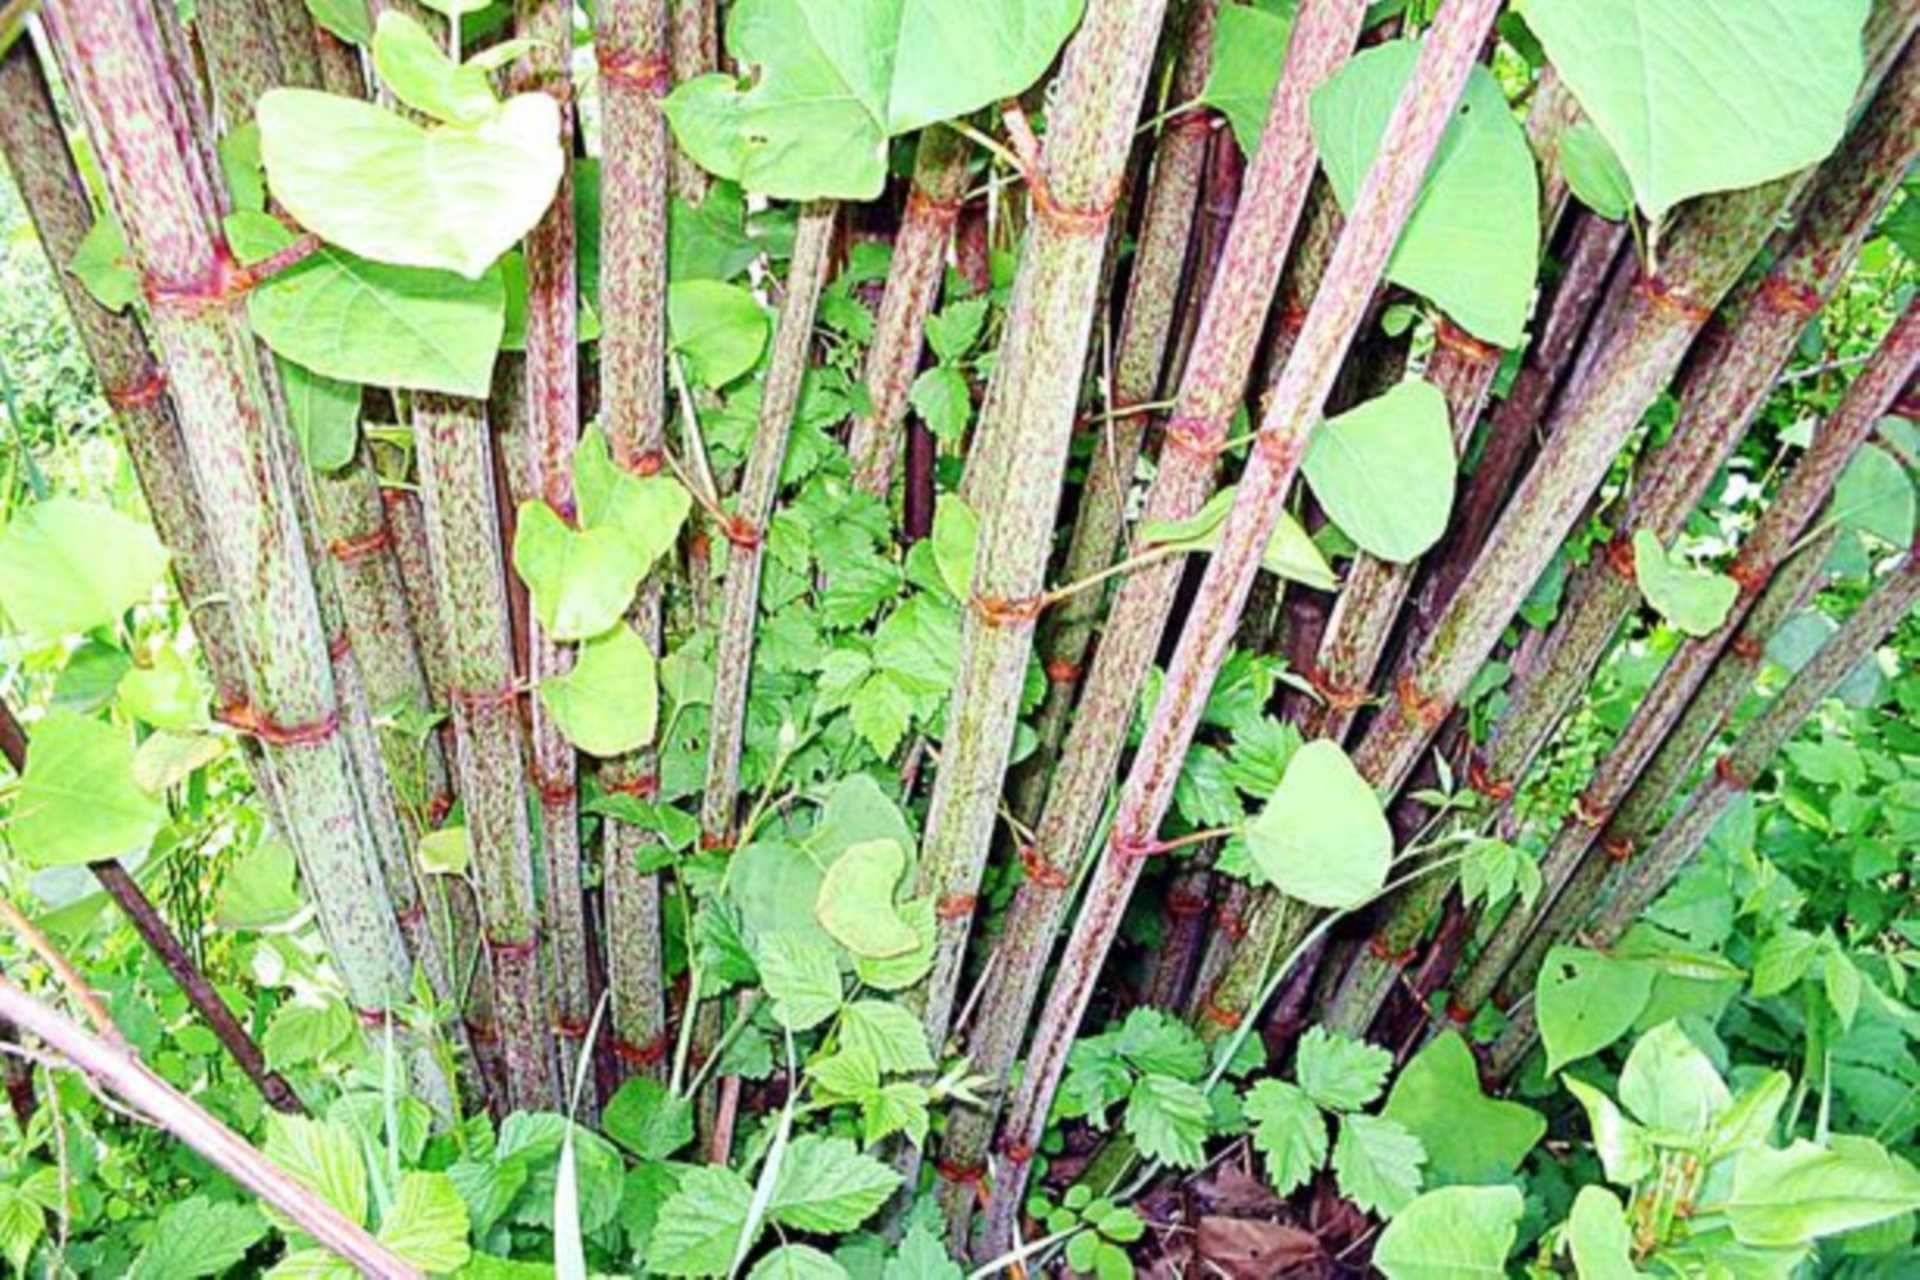 Japanese Knotweed, what is it?